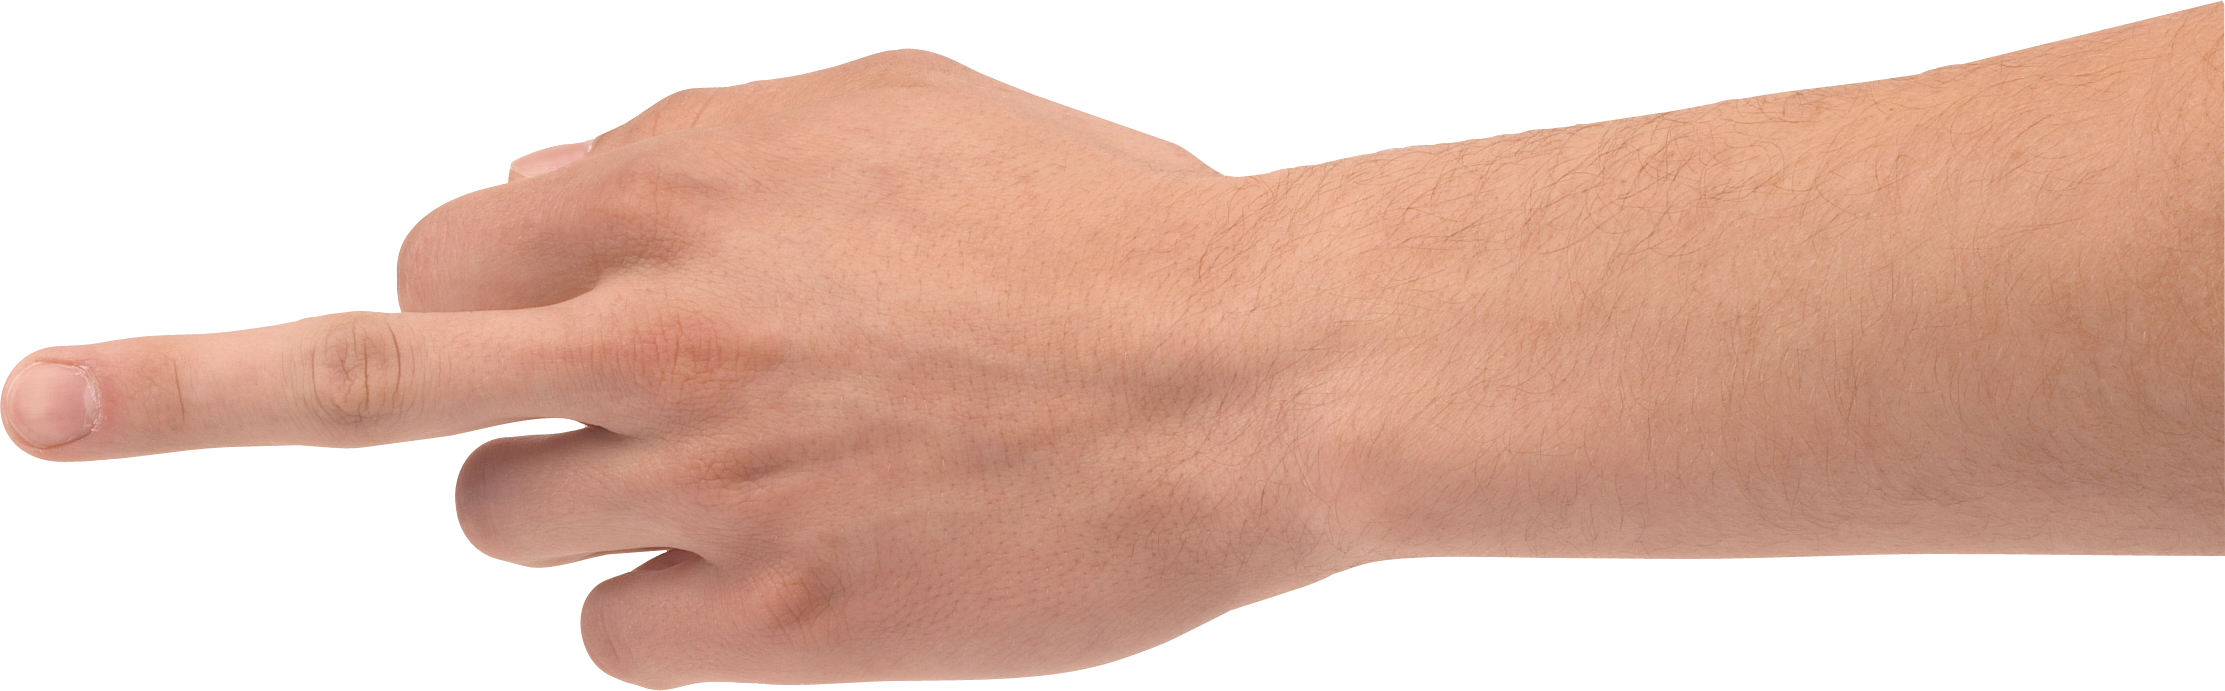 One finger hand, hands PNG, hand image free